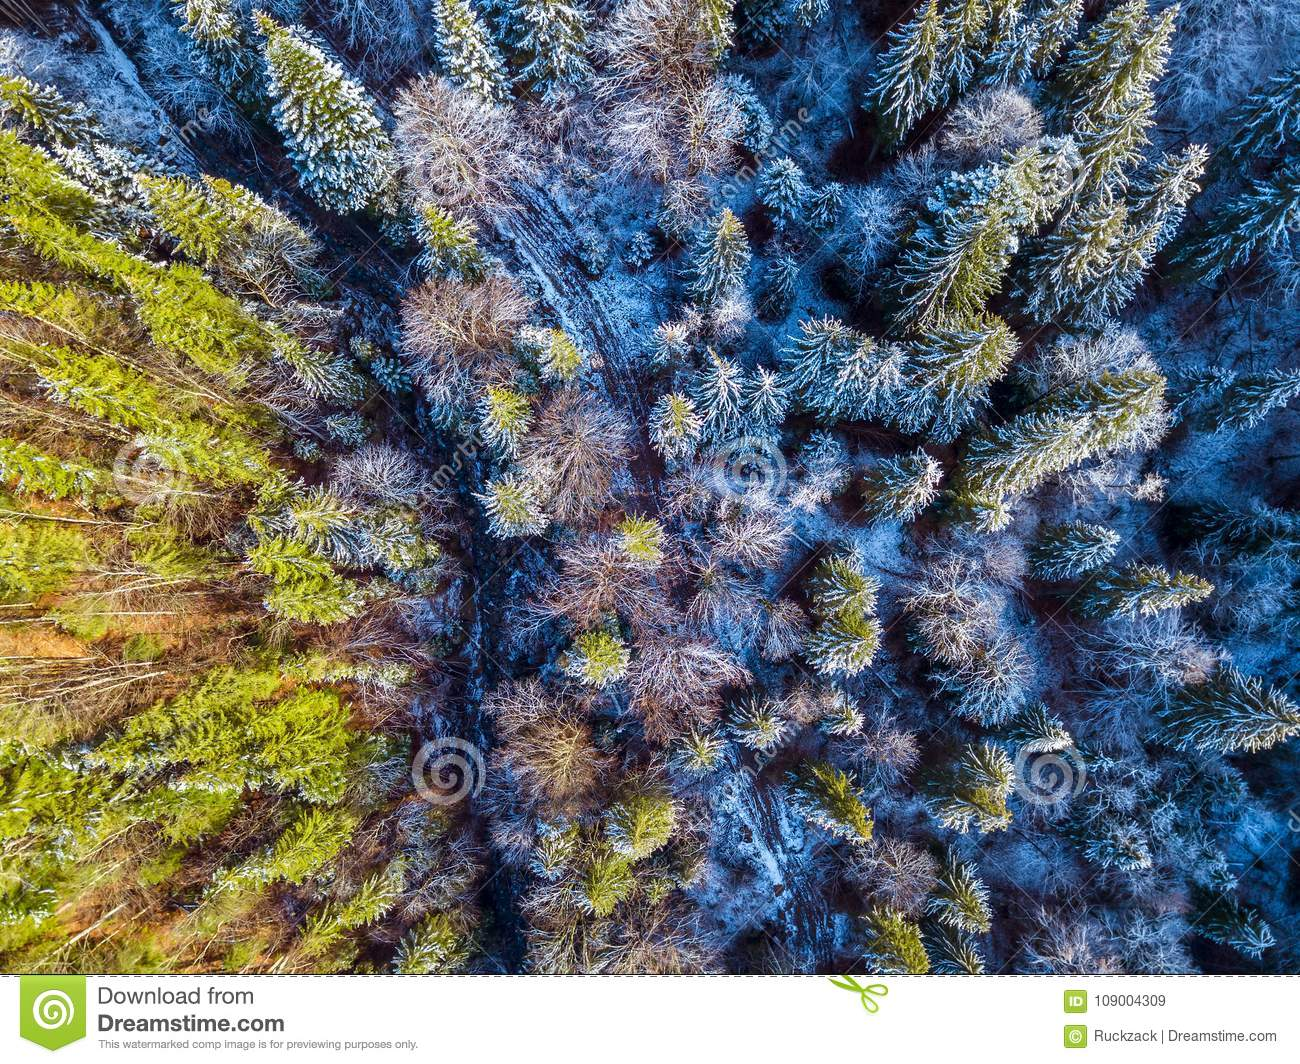 Trail and Snow in the Spruce Forest. Aerial View